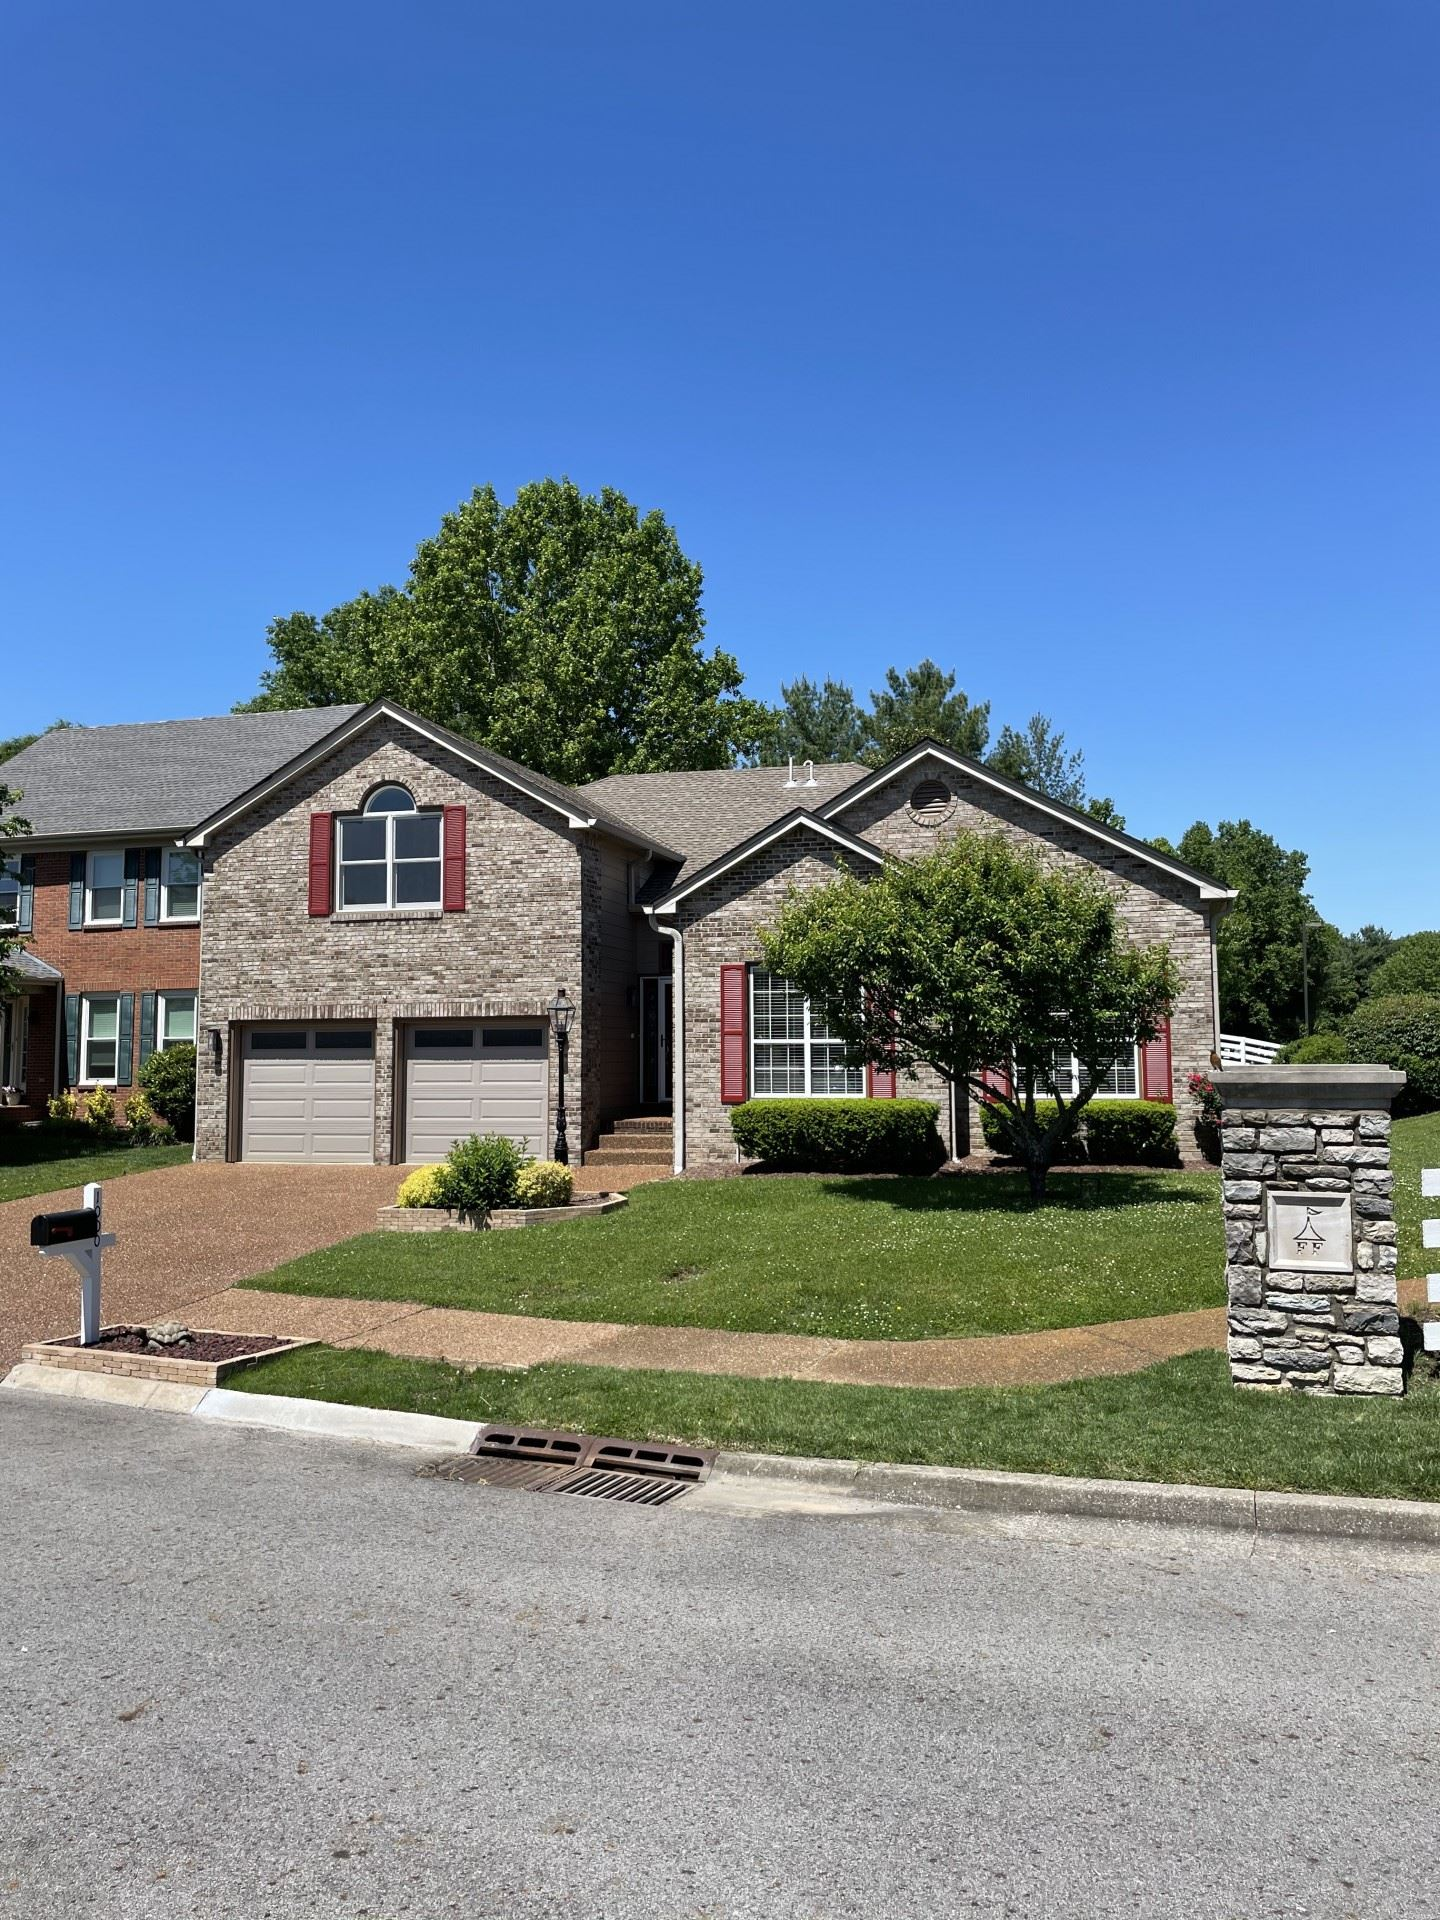 1000 Summer Haven Cir, Franklin, TN 37069 - MLS#: 2252322